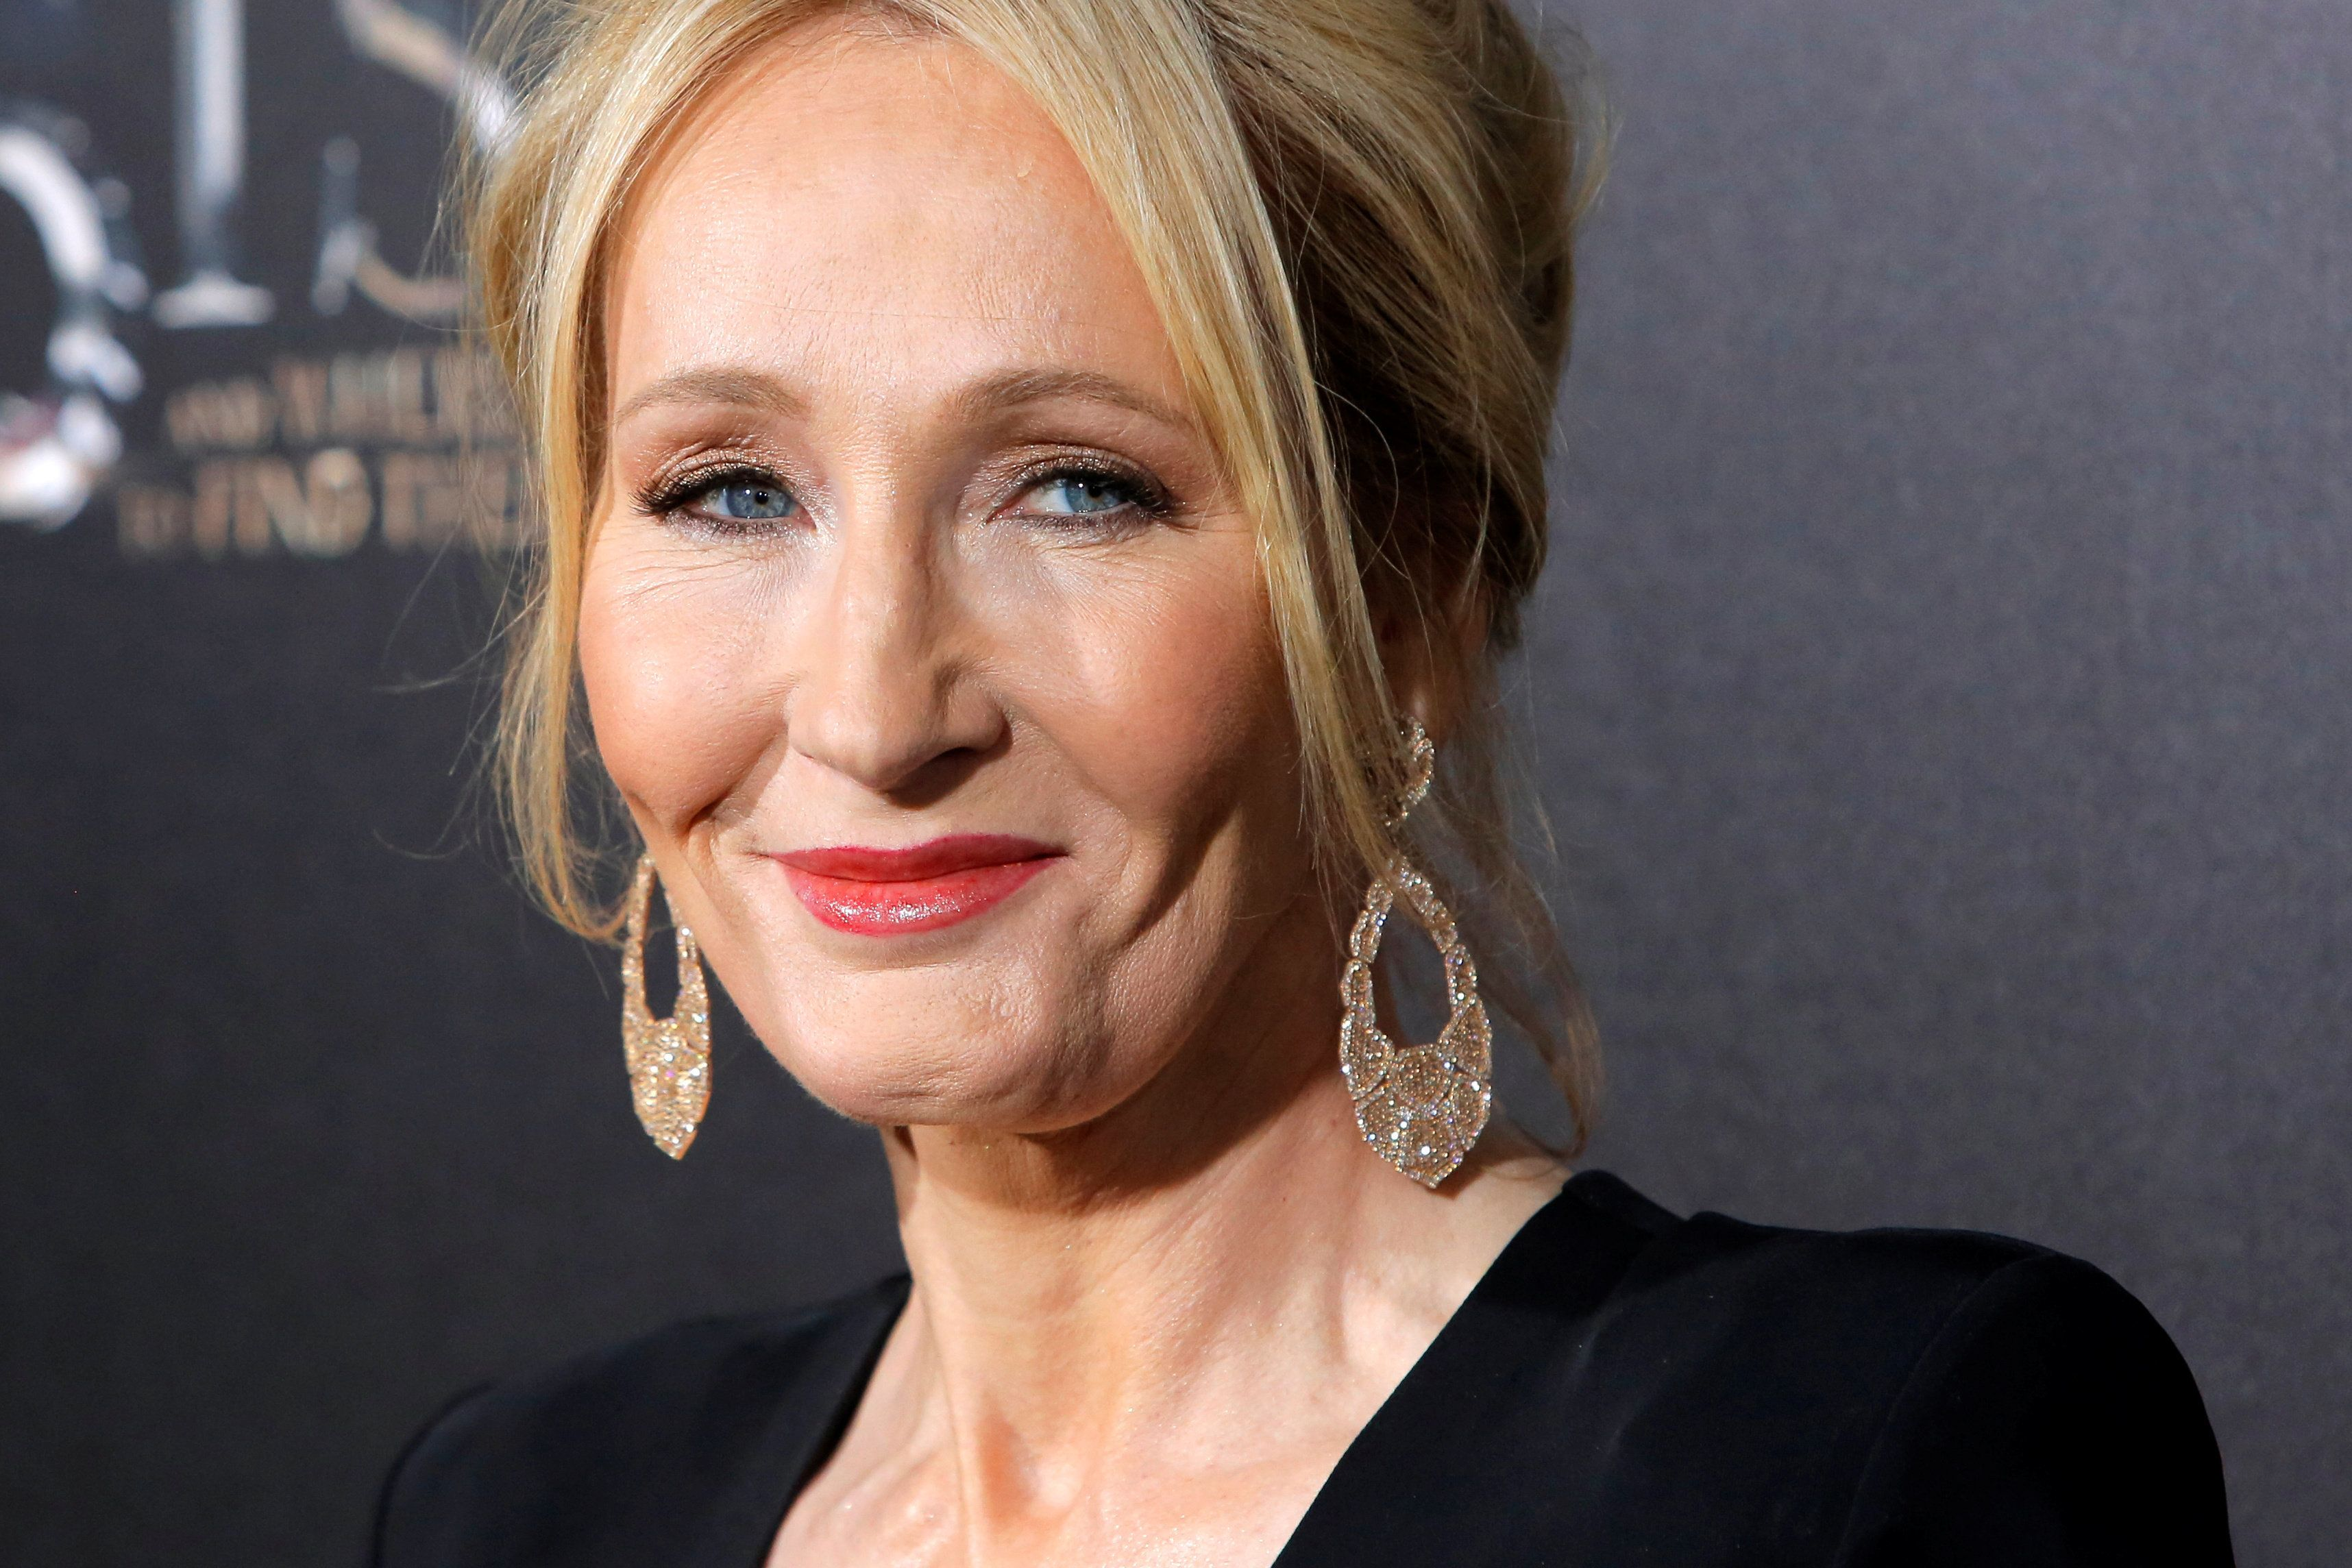 Author J.K. Rowling used Shakespeare to criticize an evangelical Trump supporter.